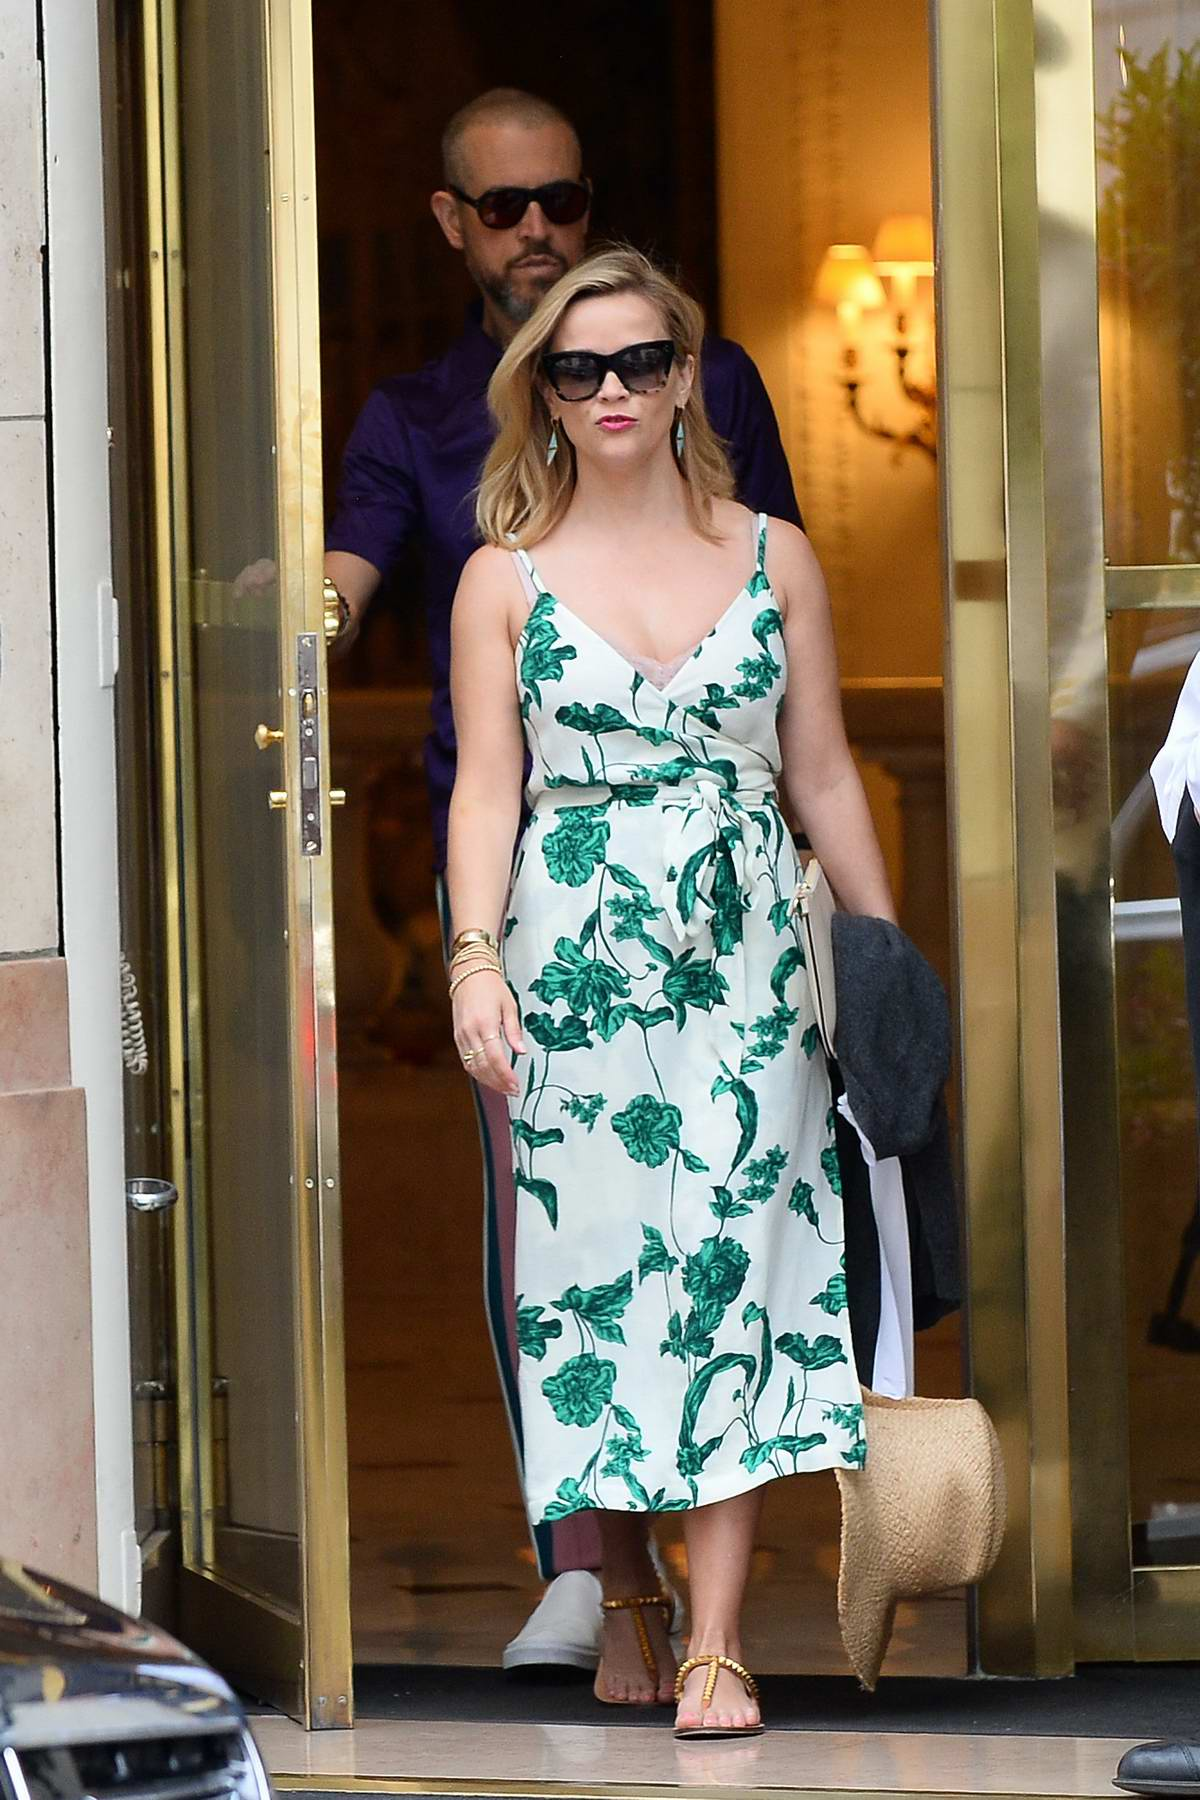 Reese Witherspoon looks lovely in a floral print dress as she leaves Bristol Hotel with husband Jim Toth in Paris, France